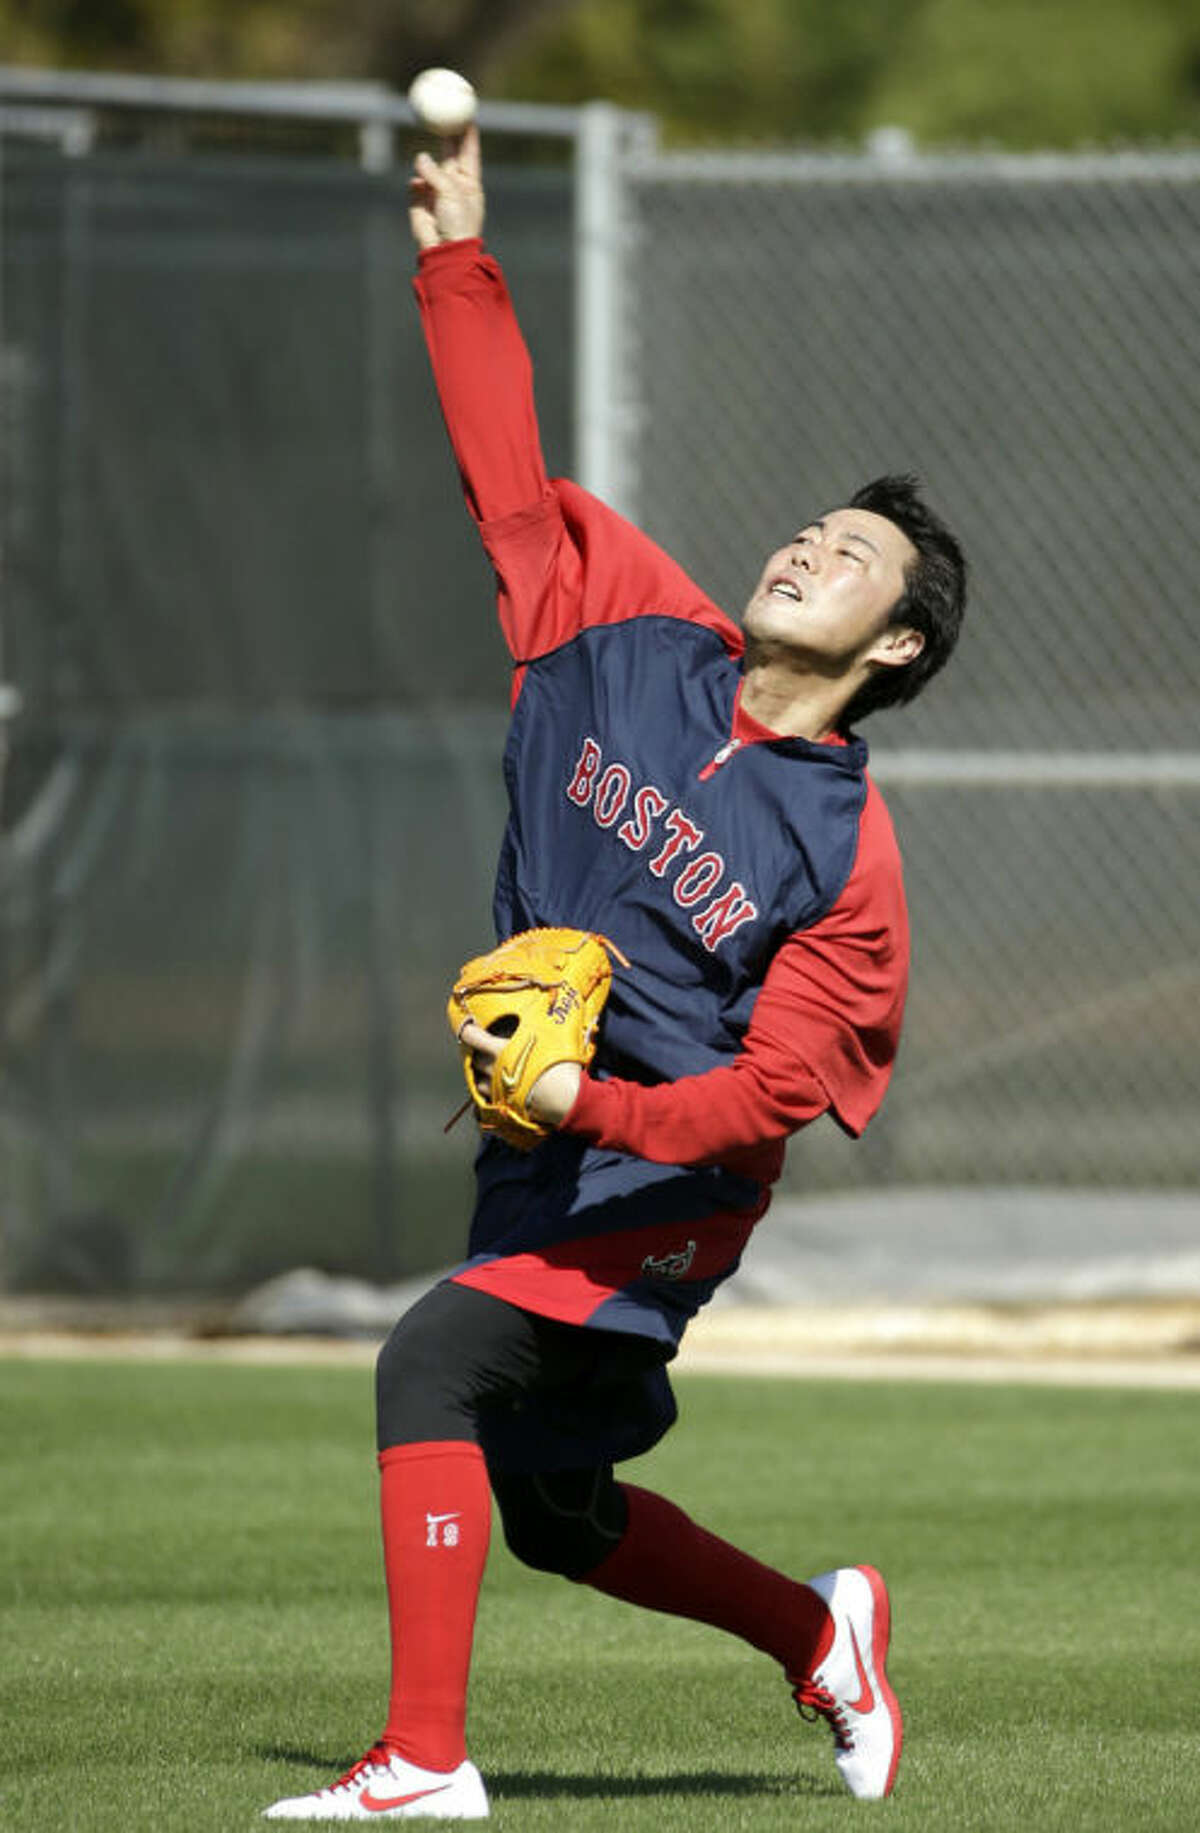 Boston Red Sox pitcher Koji Uehara throws during spring training baseball practice Saturday, Feb. 15, 2014, in Fort Myers, Fla. (AP Photo/Steven Senne)